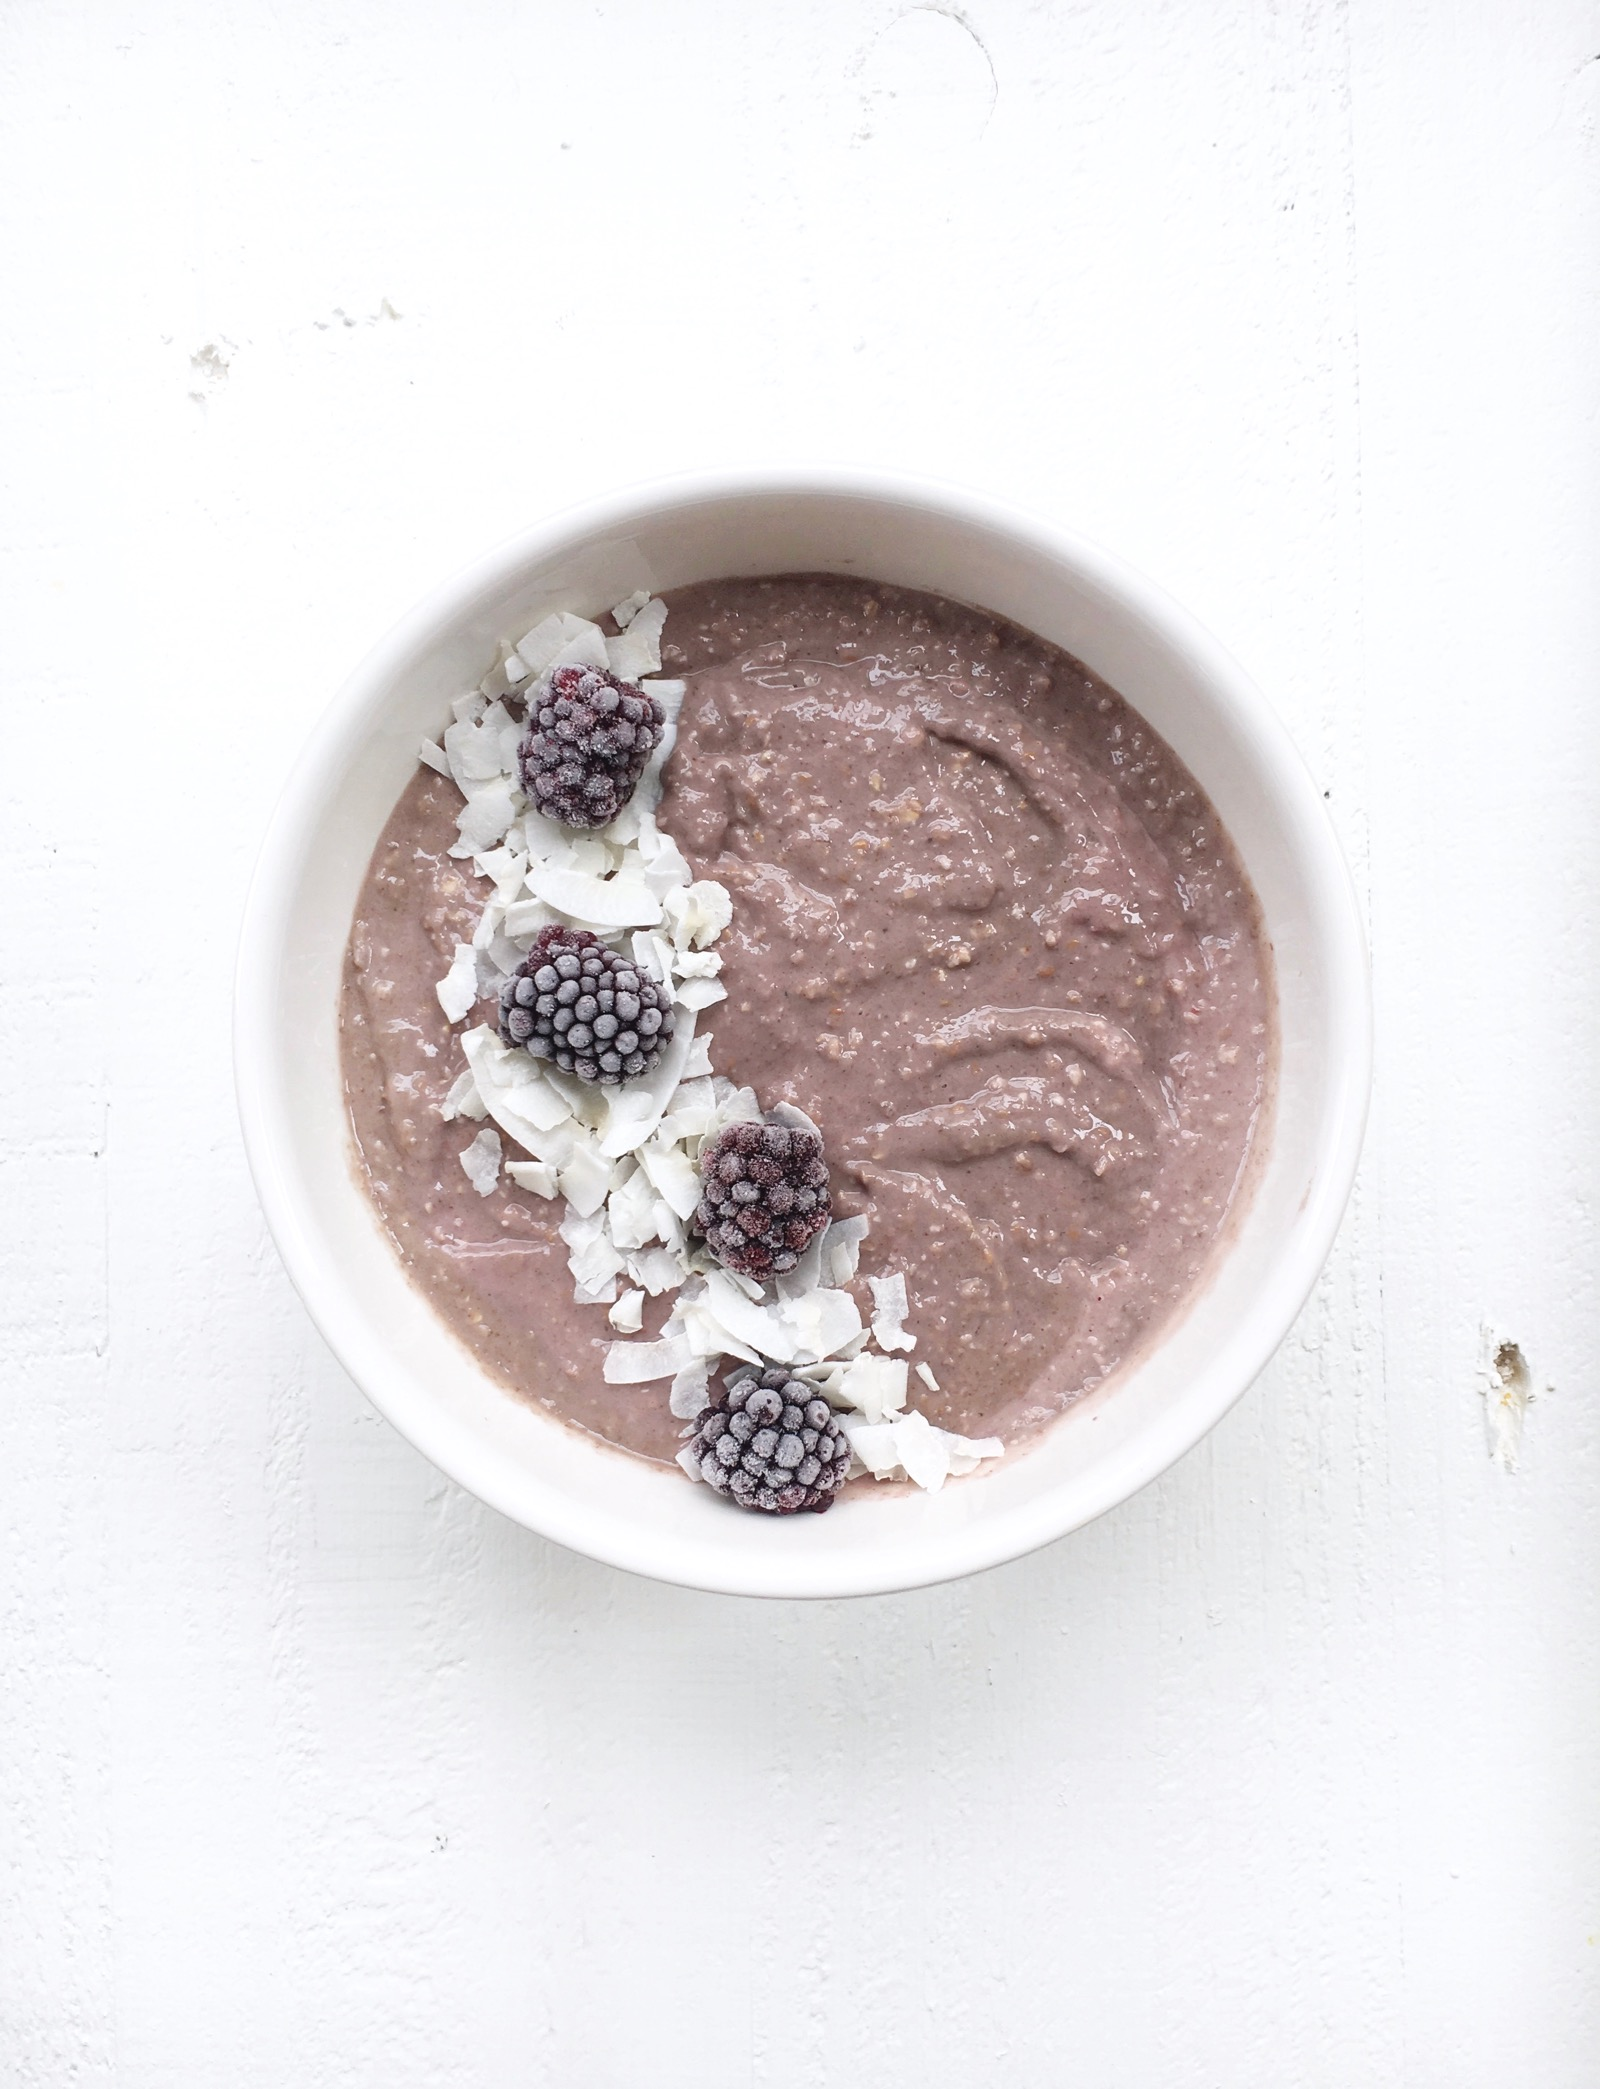 Be Well By Kelly collagen smoothie bowl